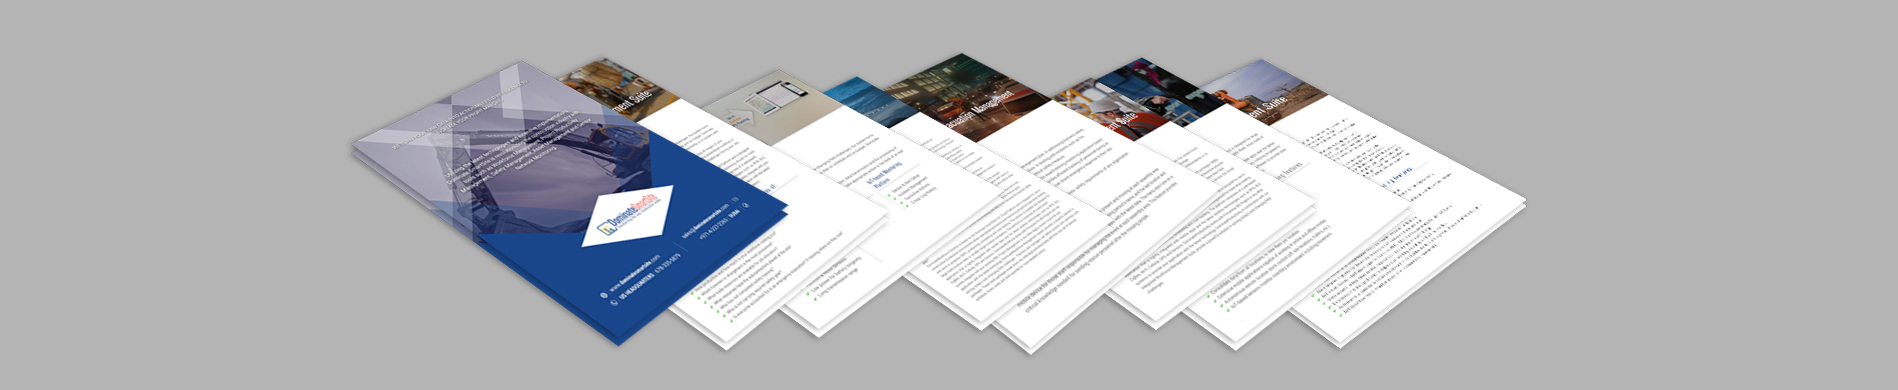 DominateSmartSite Construction Management Solutions Brochures